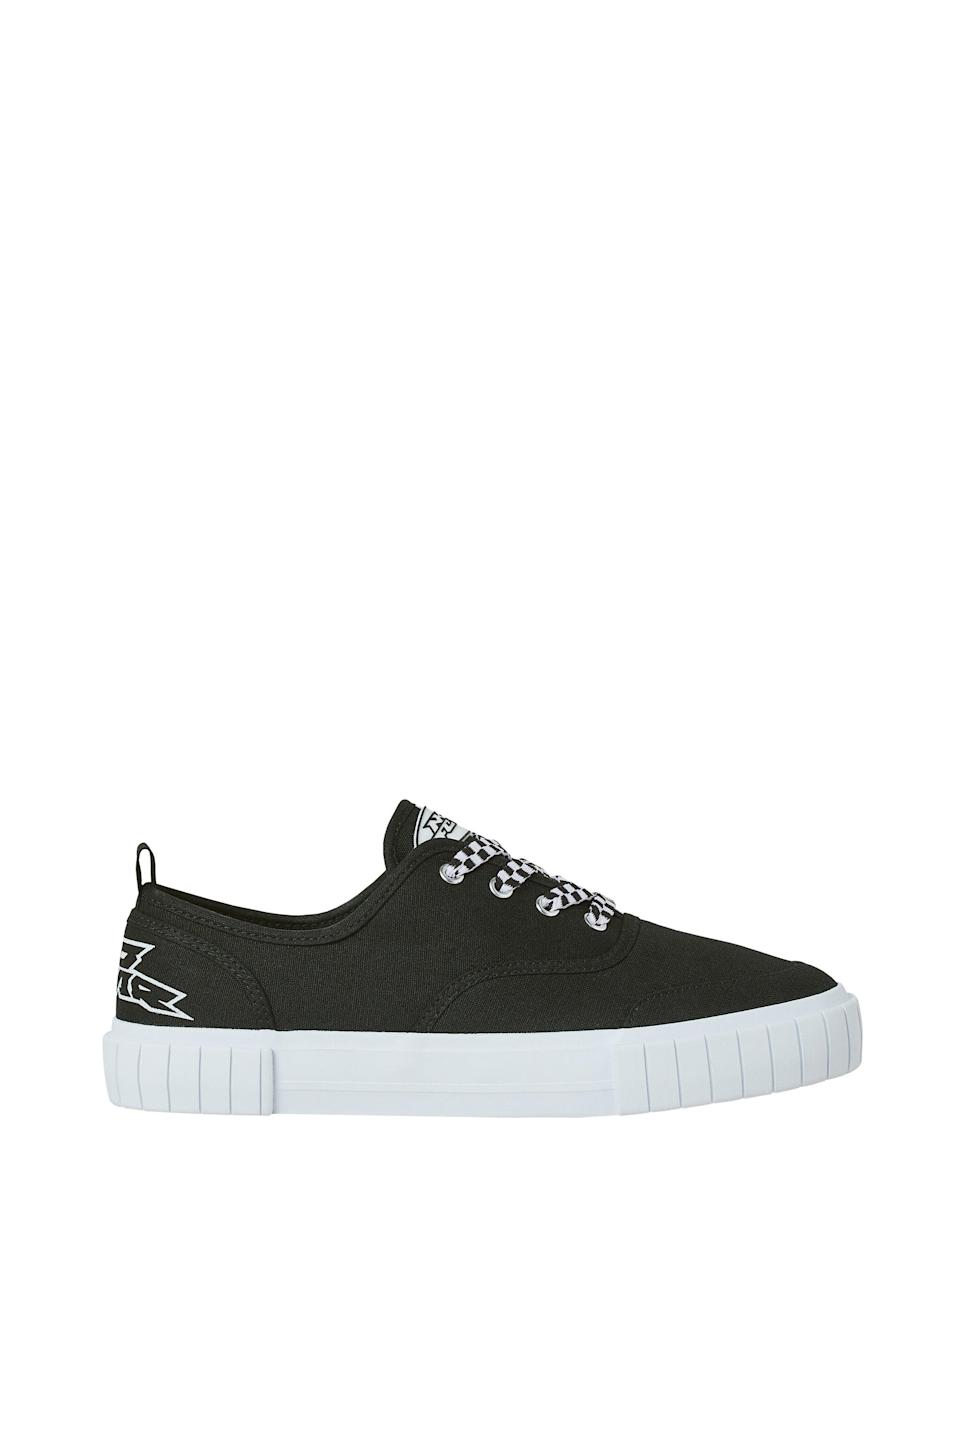 <p>It wouldn't be a skating-inspired collection without a classic pair of skate shoes. These <span>No Fear x H&amp;M Low Profile Canvas Sneakers</span> ($20) go with everything.</p>